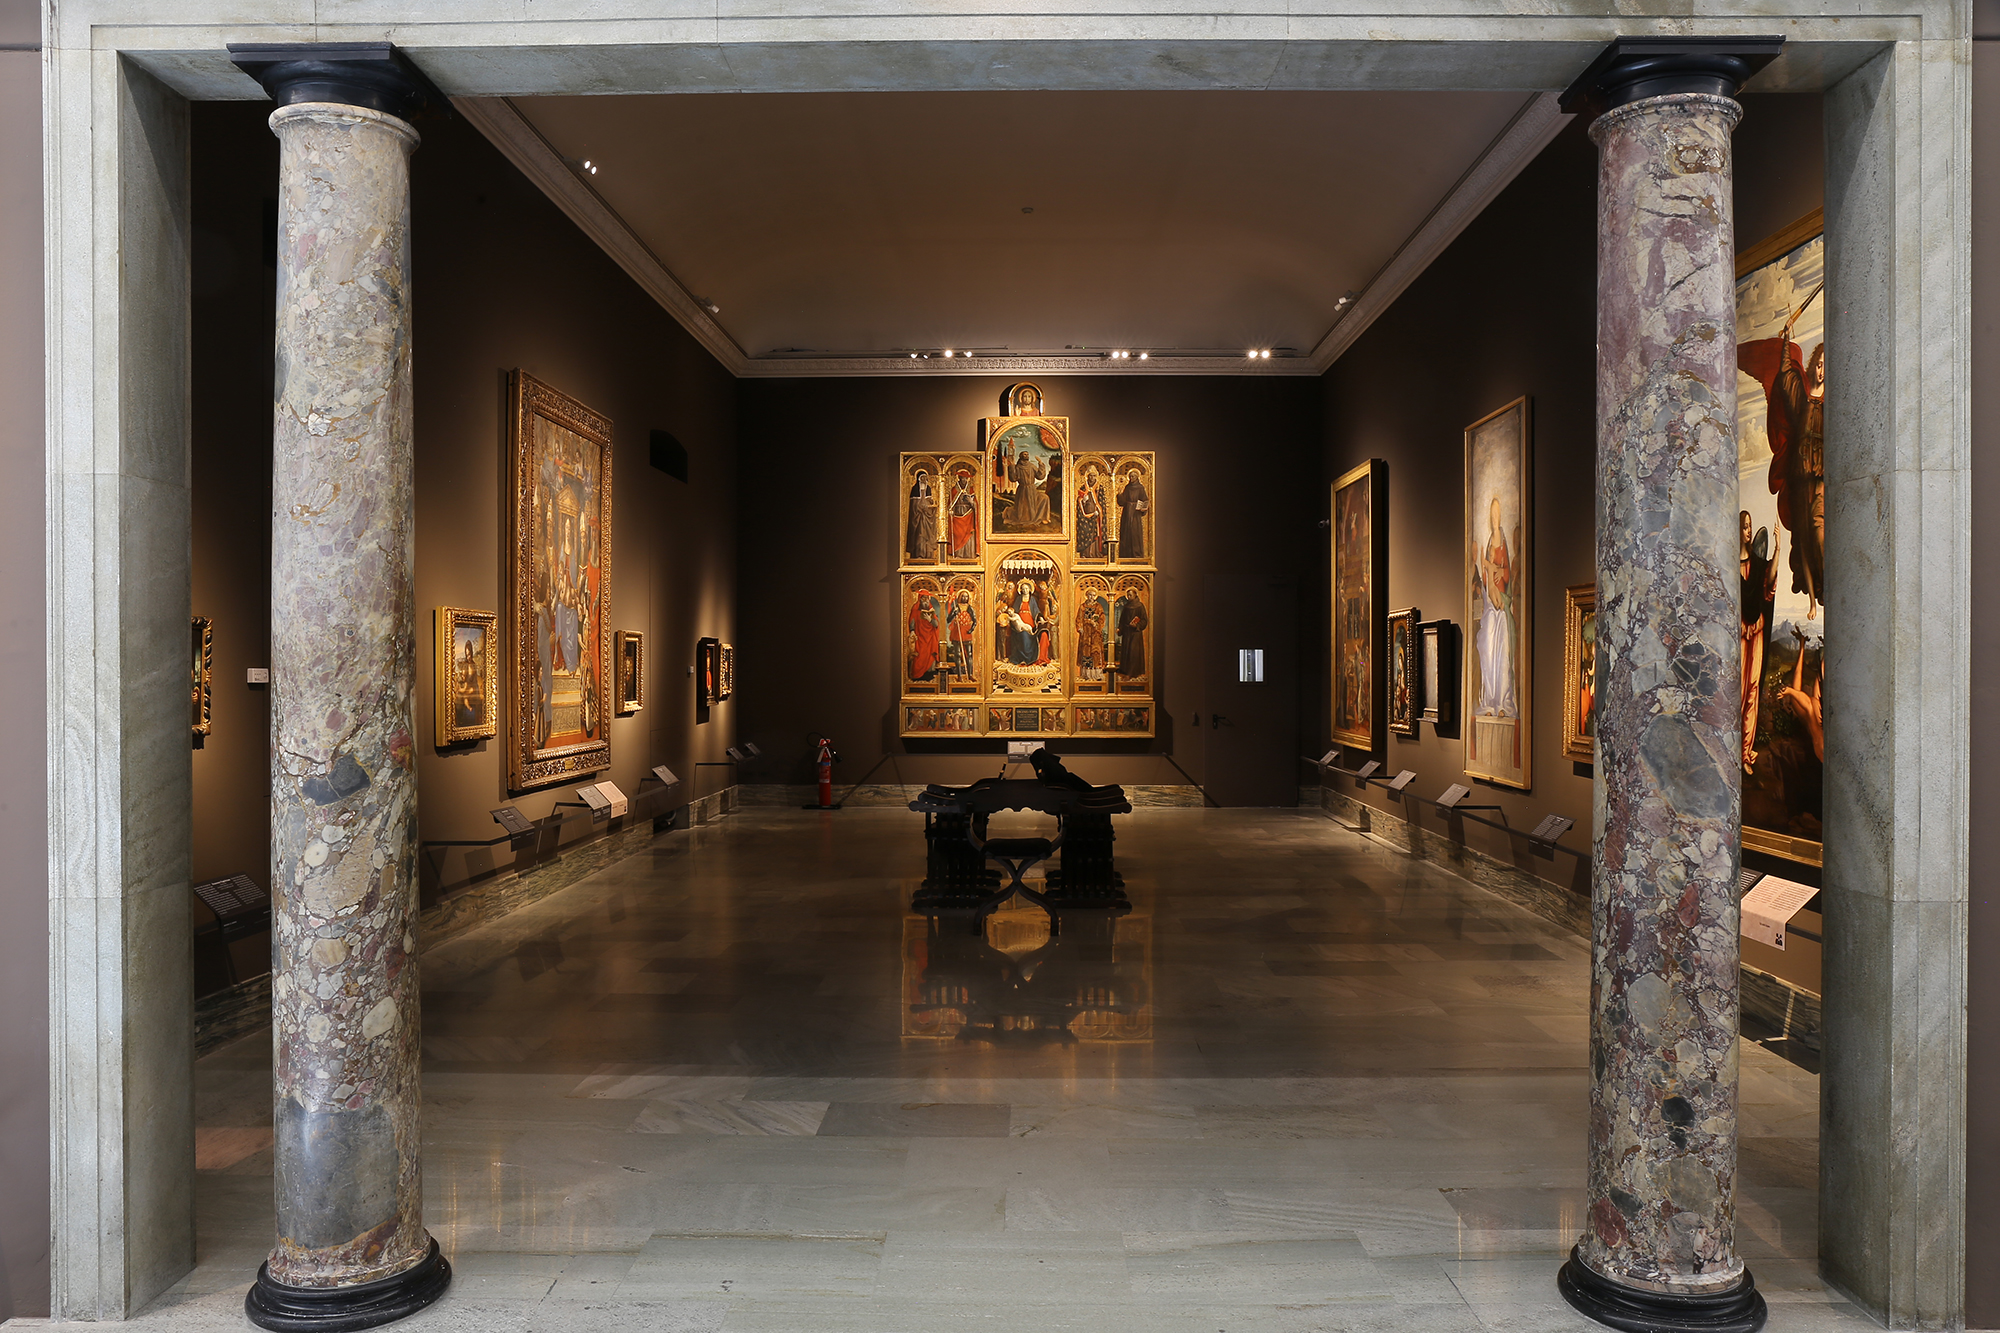 布雷拉美术馆展陈内景 Exhibition View in Pinacoteca di Brera 04.jpg